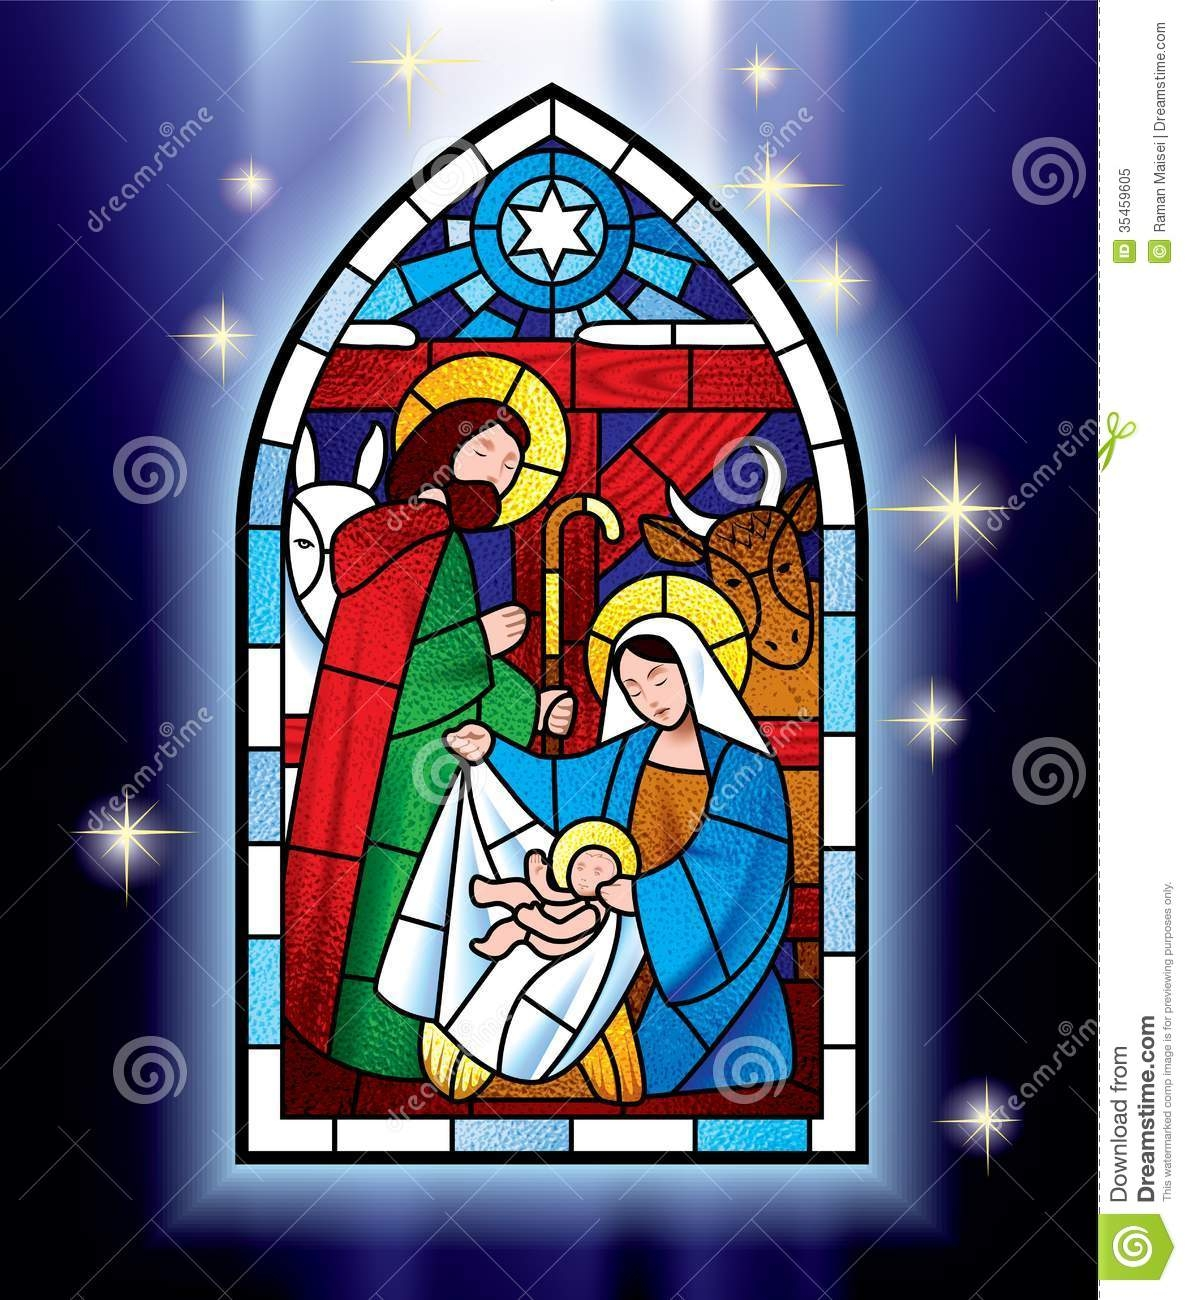 Menorah Coloring Page - Christmas Stained Glass Window Stock Vector Image